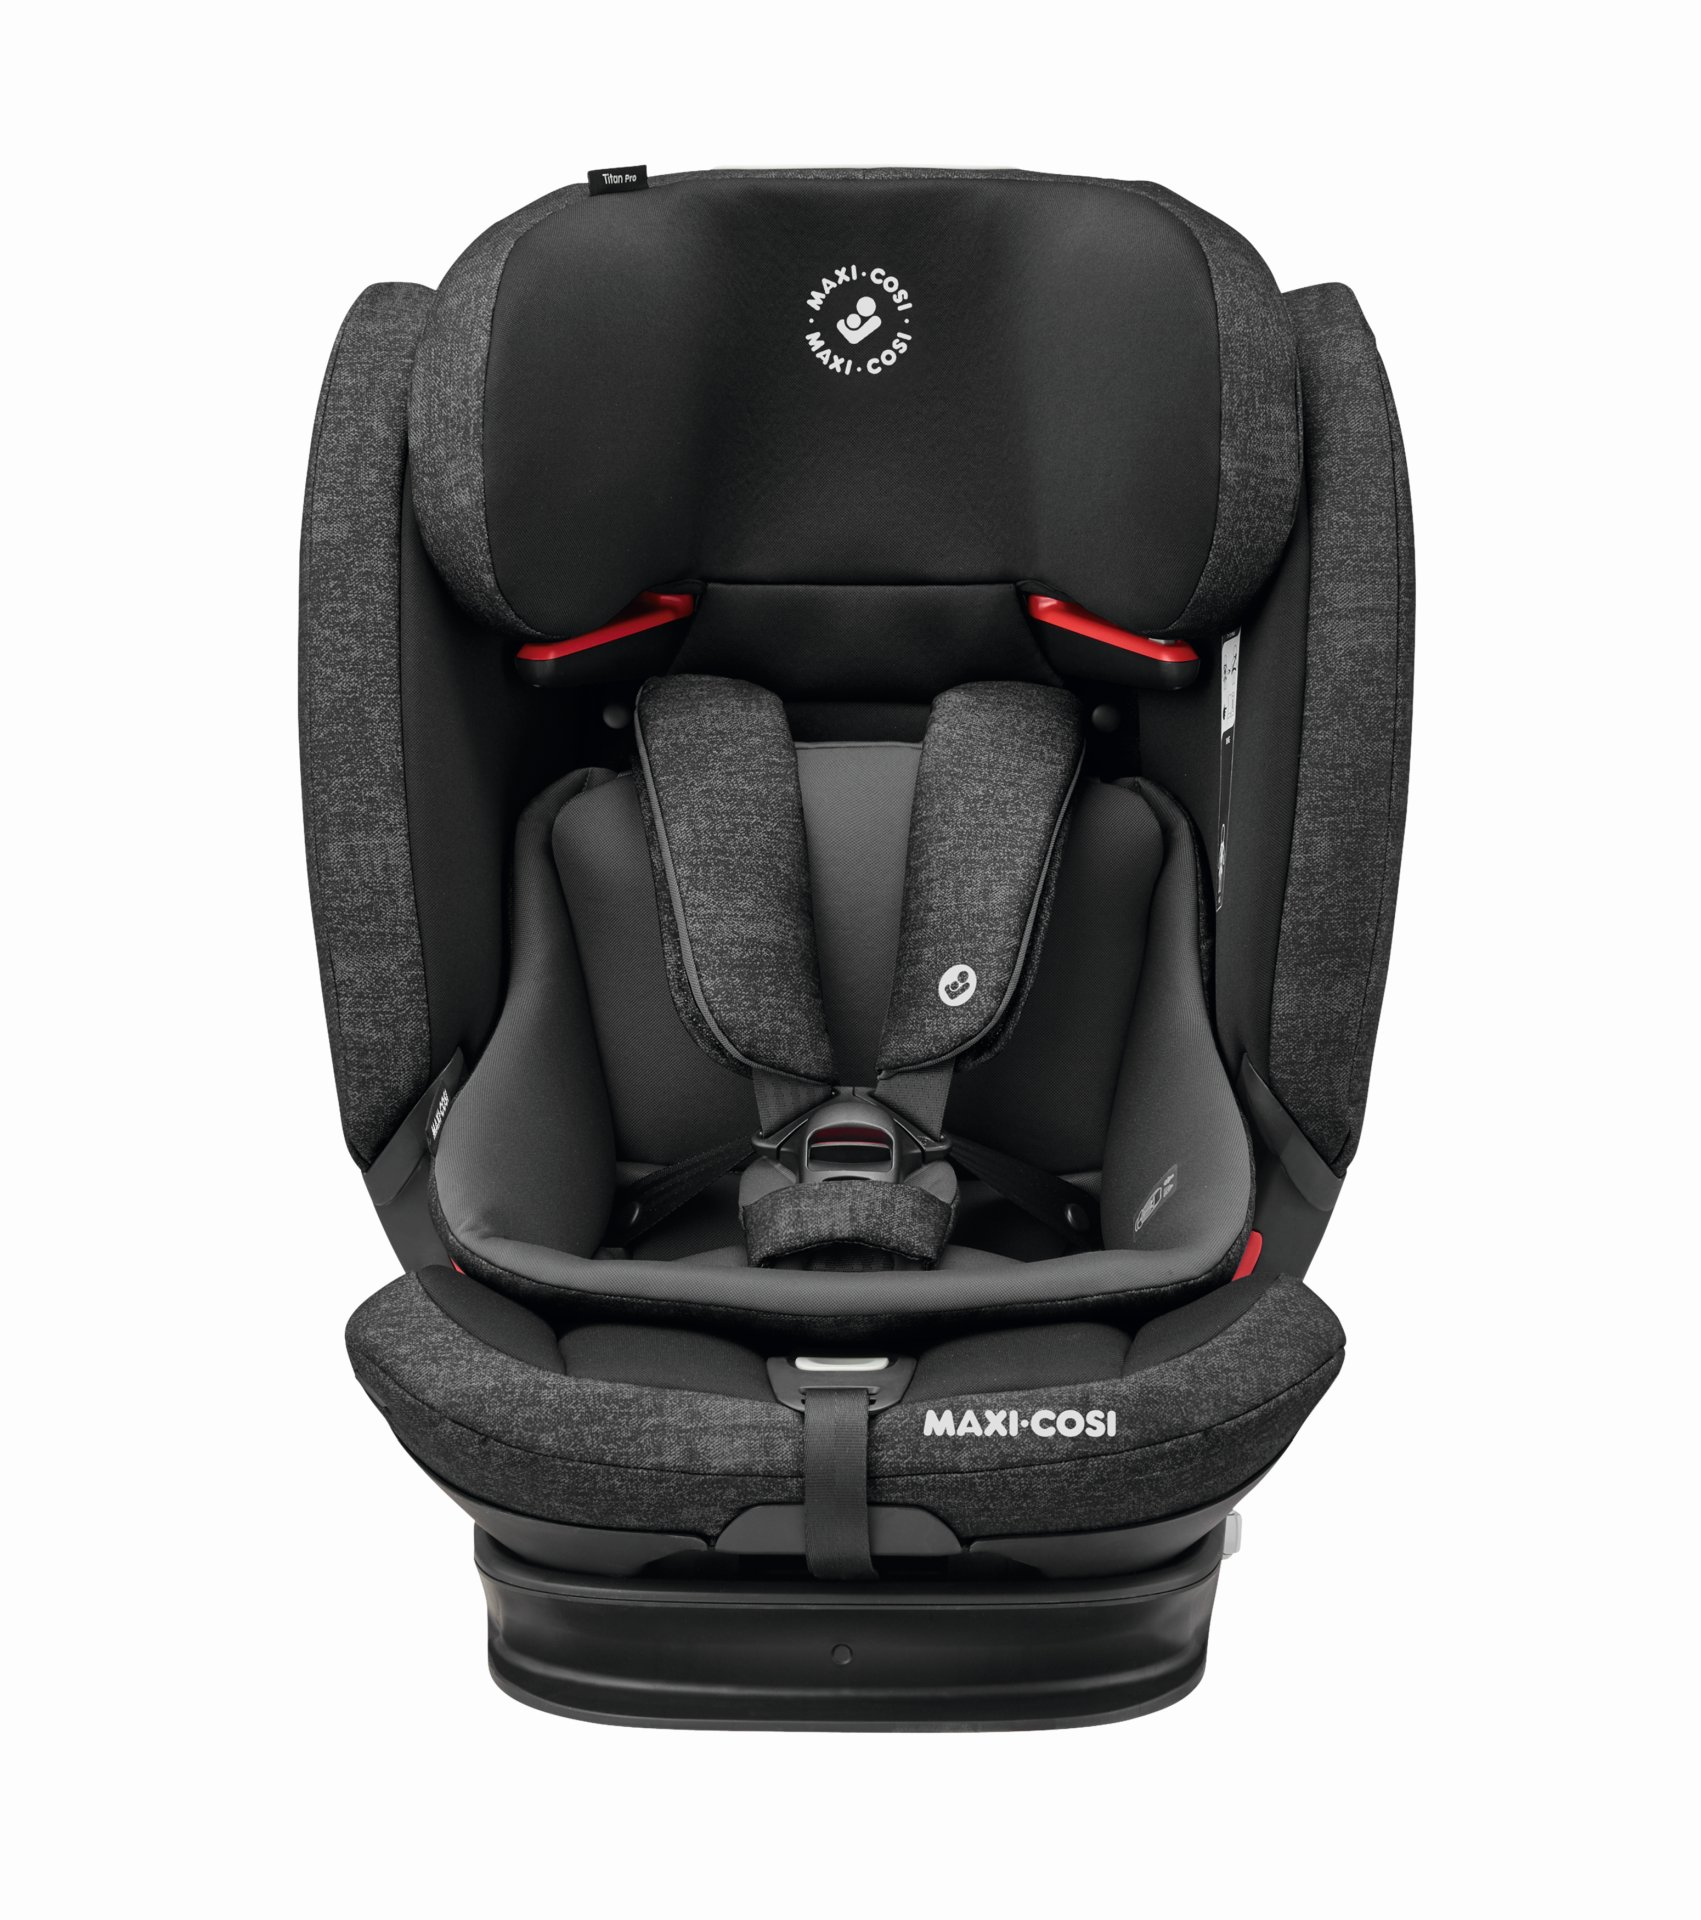 maxi cosi child car seat titan pro 2019 nomad black buy. Black Bedroom Furniture Sets. Home Design Ideas